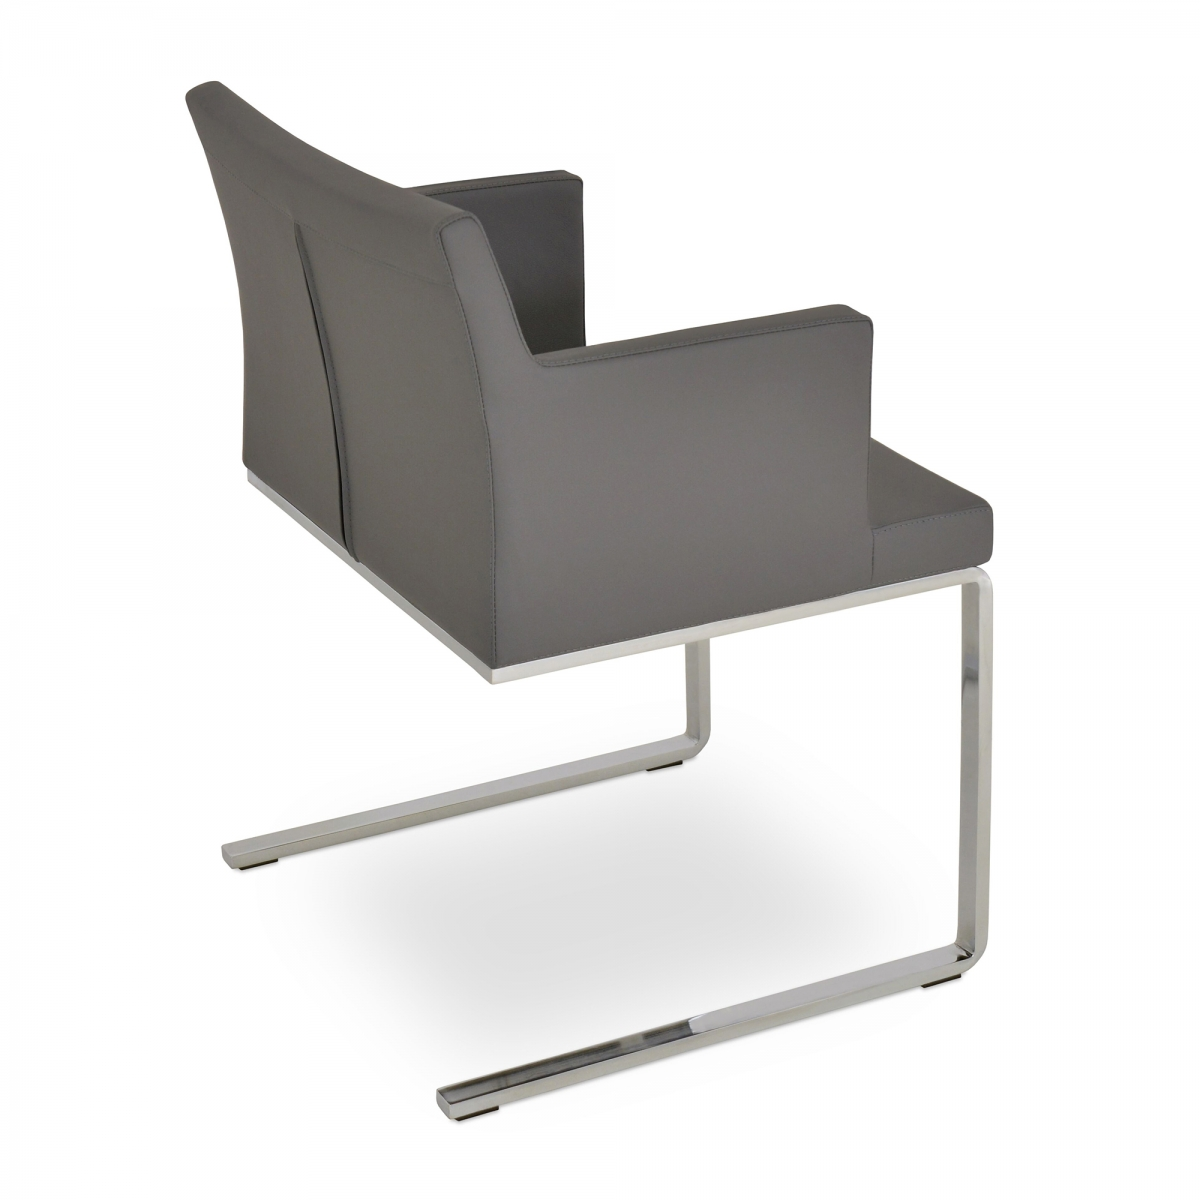 Soho Arm Guest Chair, Flat & Slide Frames